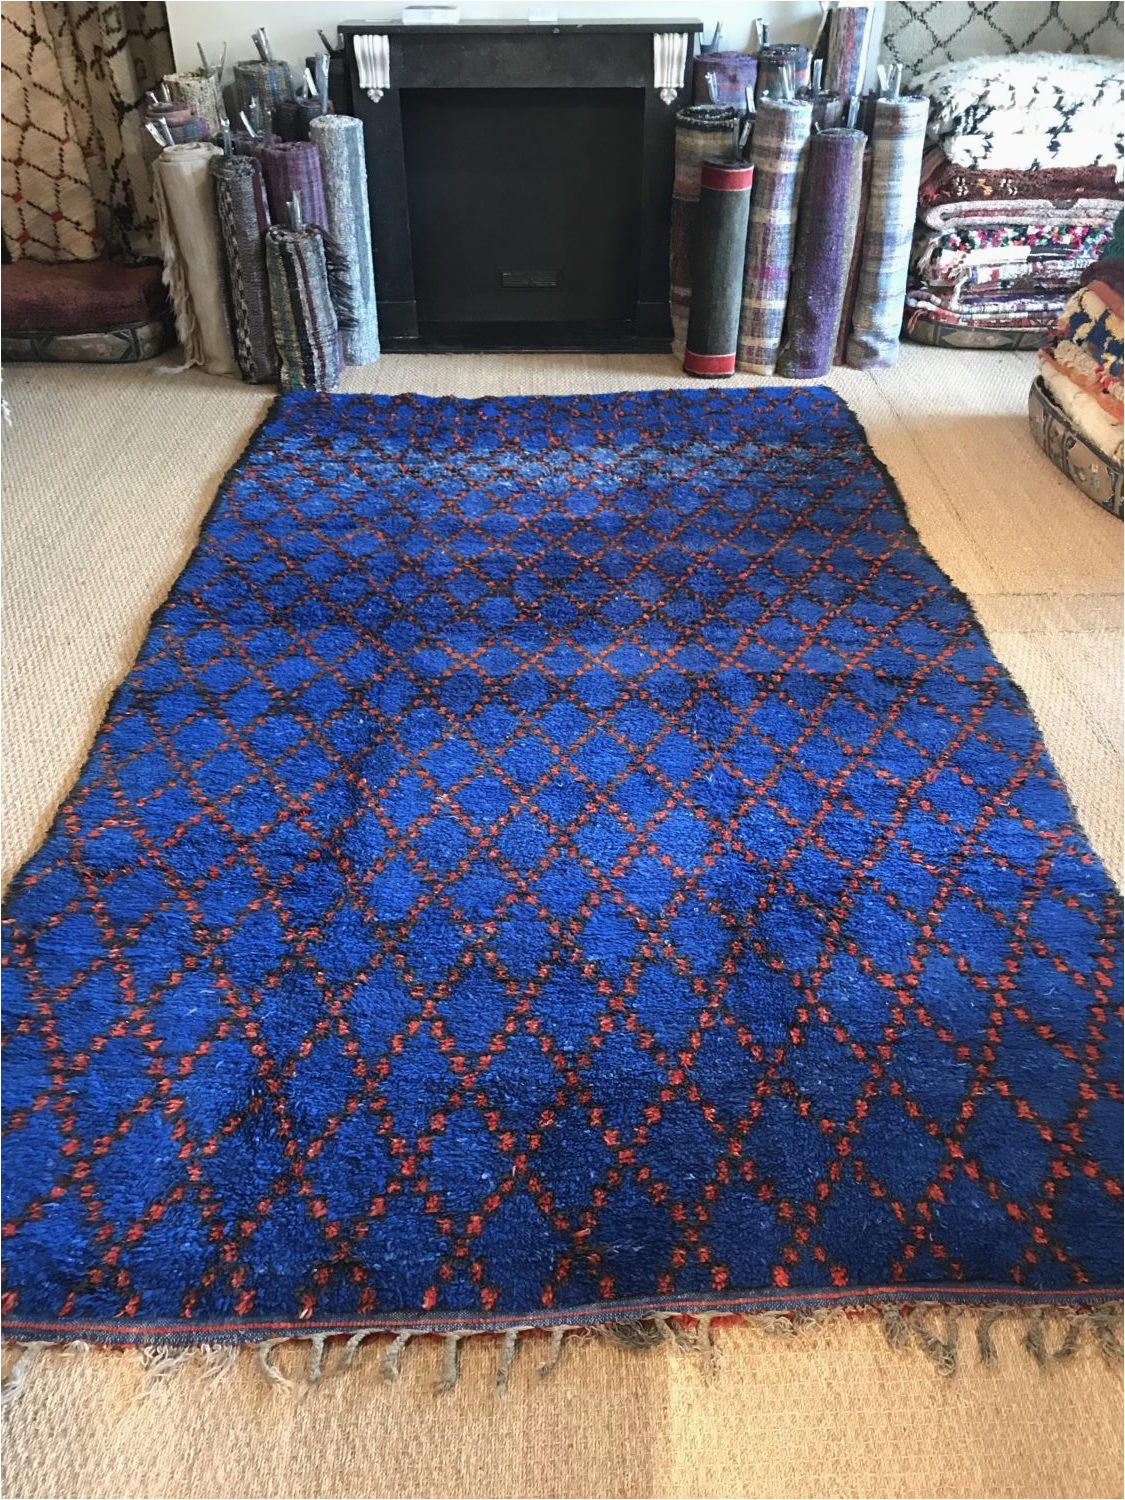 Extra Large Blue Rugs Vintage Moroccan Pile Rug Cobalt Blue Hand Woven 1970s Wool Rug Geometric Red Diamond Design